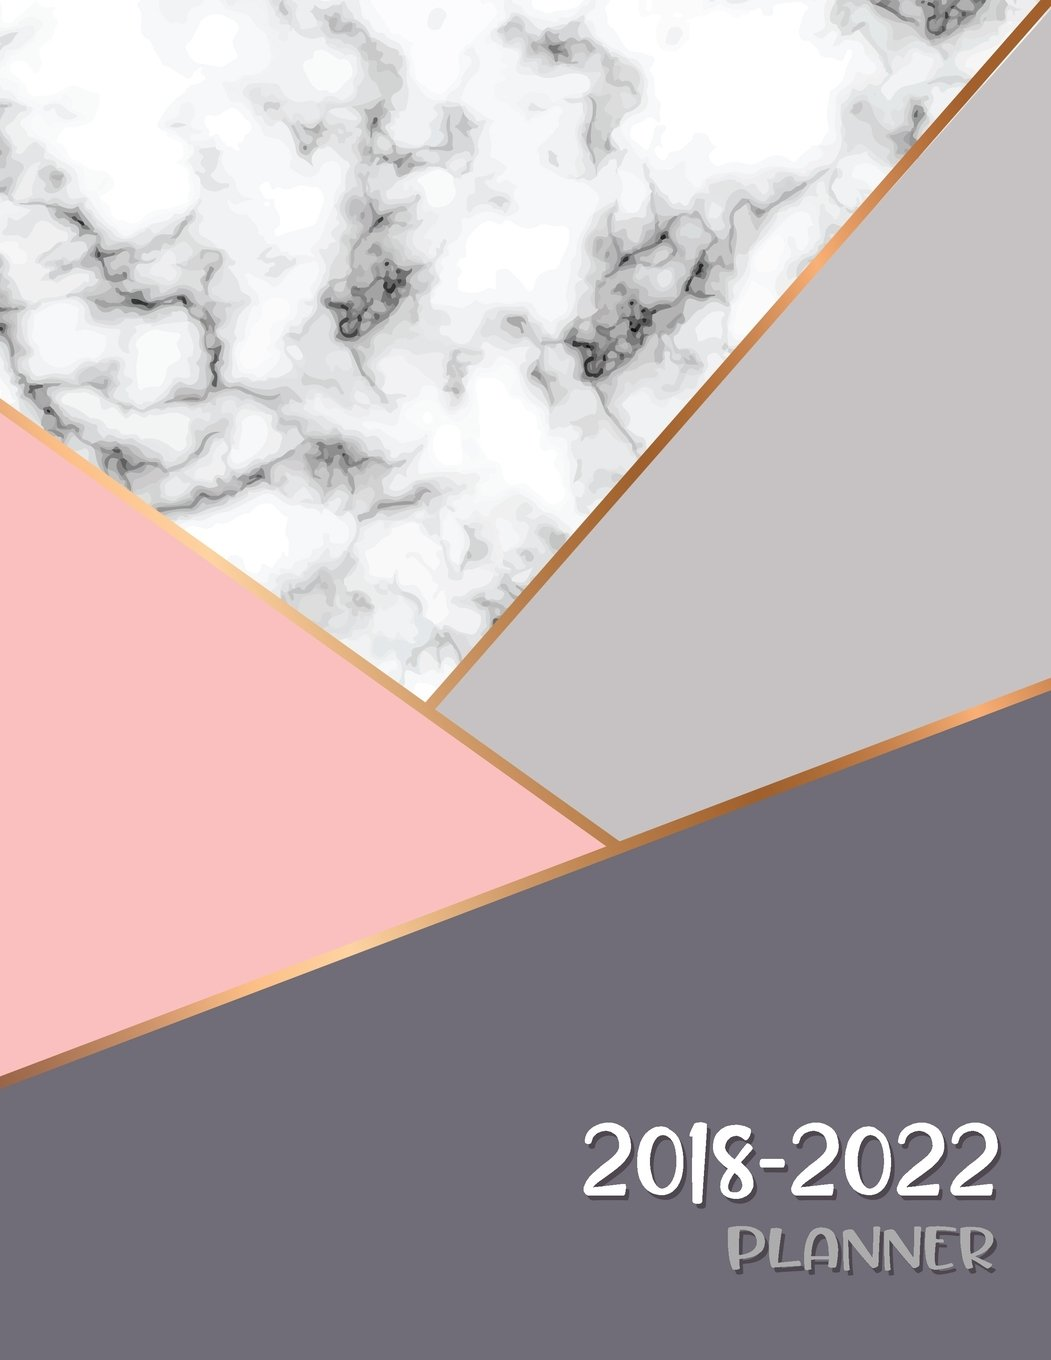 Amazon.com: 2018 - 2022 Planner: Agenda Planner For The Next ...